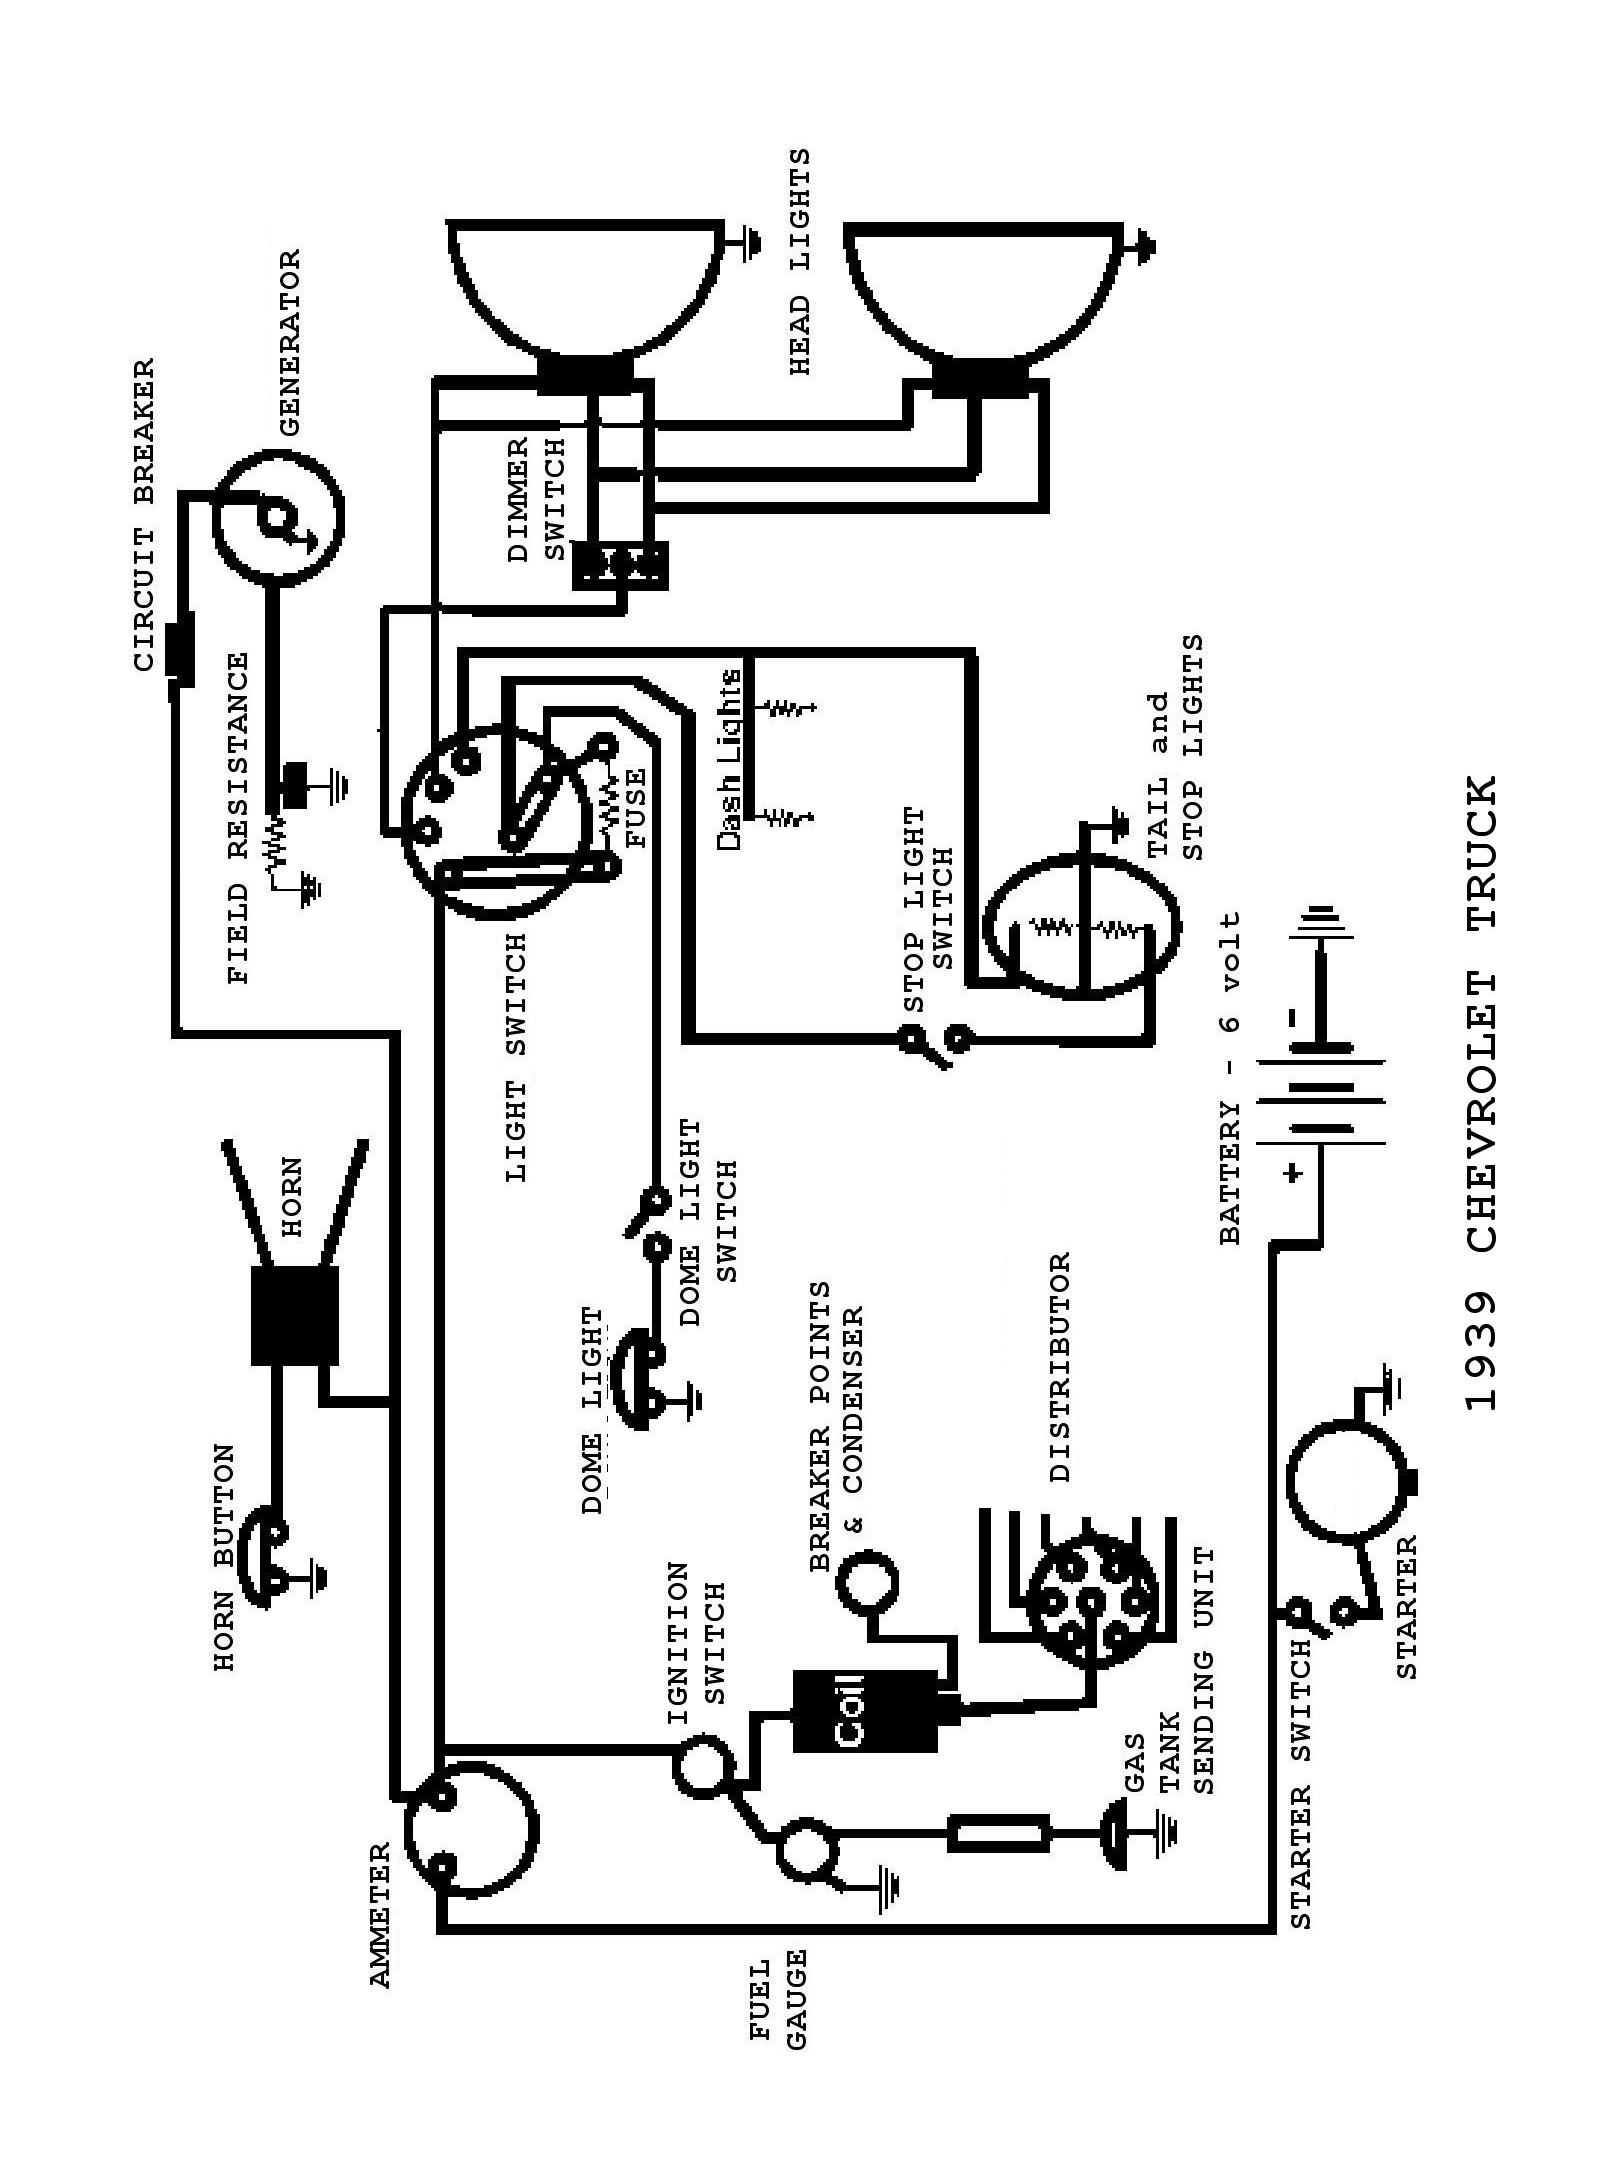 Chevy Wiring Diagrams Basic Ignition Switch Diagram 1939 Truck